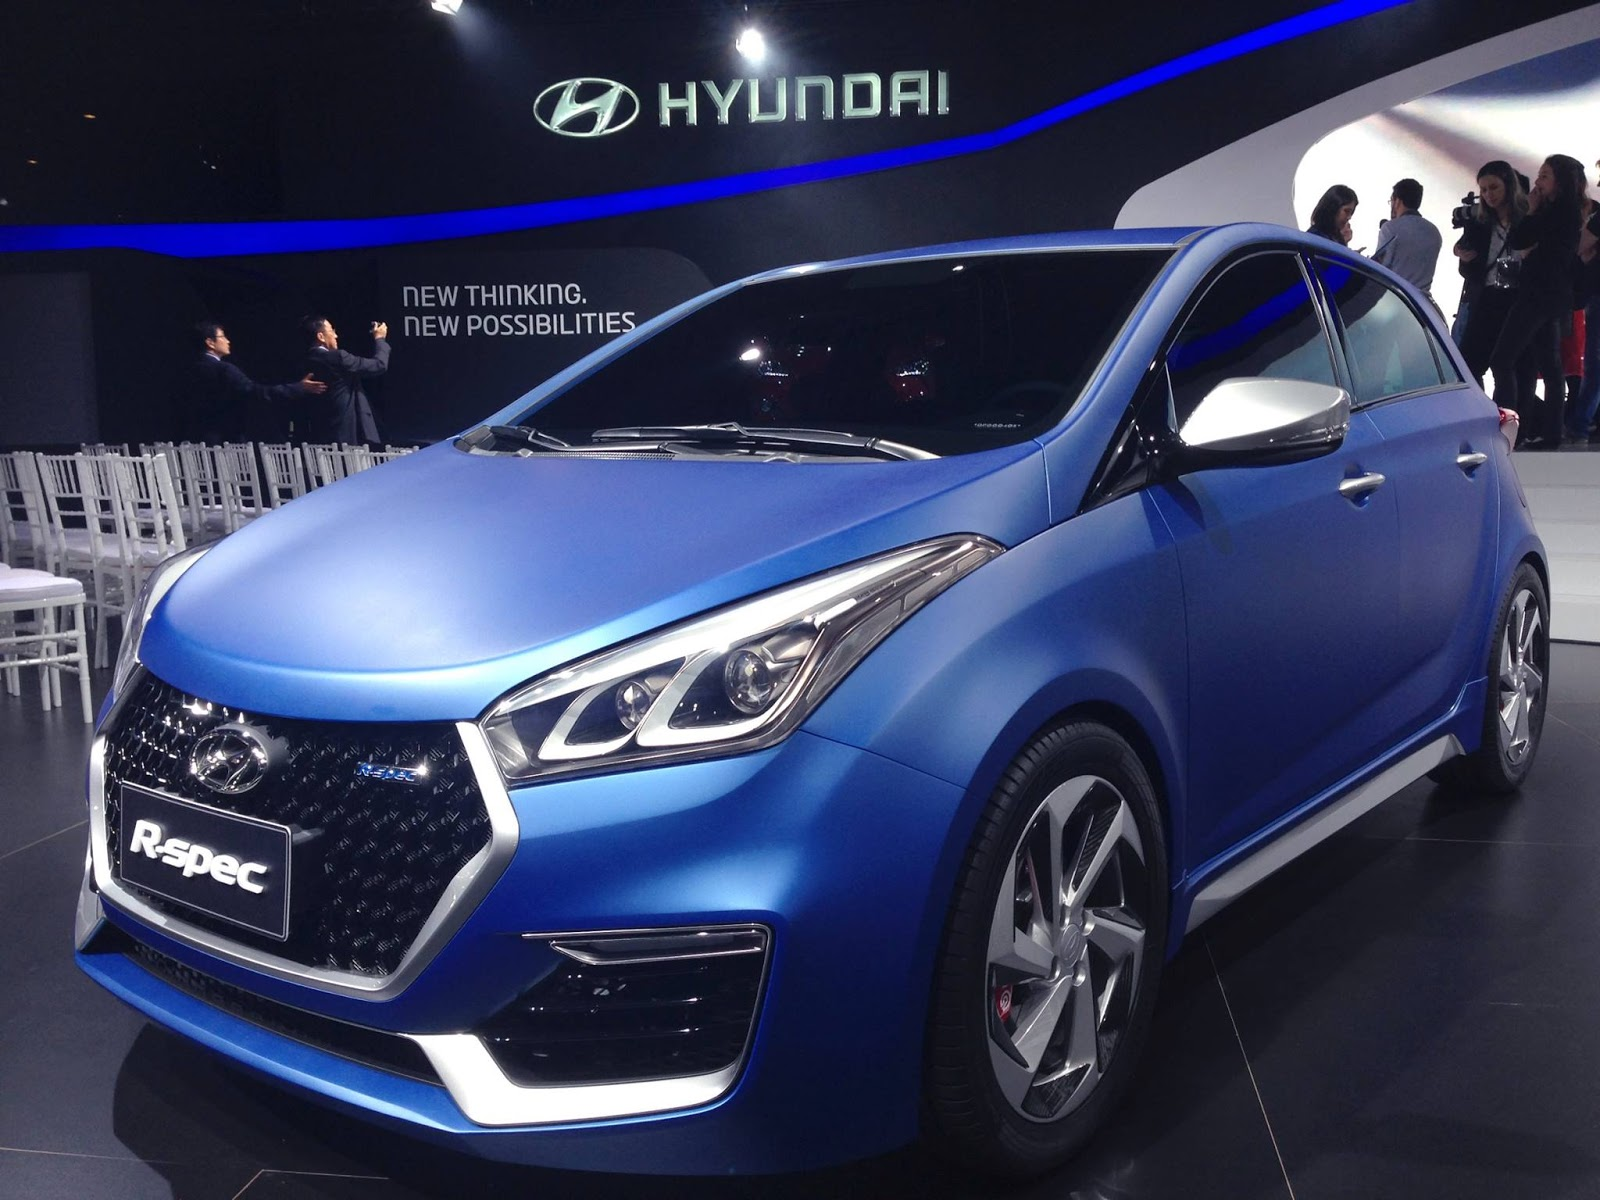 Hyundai Debuts HB20 R-Spec Concept Sporty Hatch at Sao Paulo Motor Show